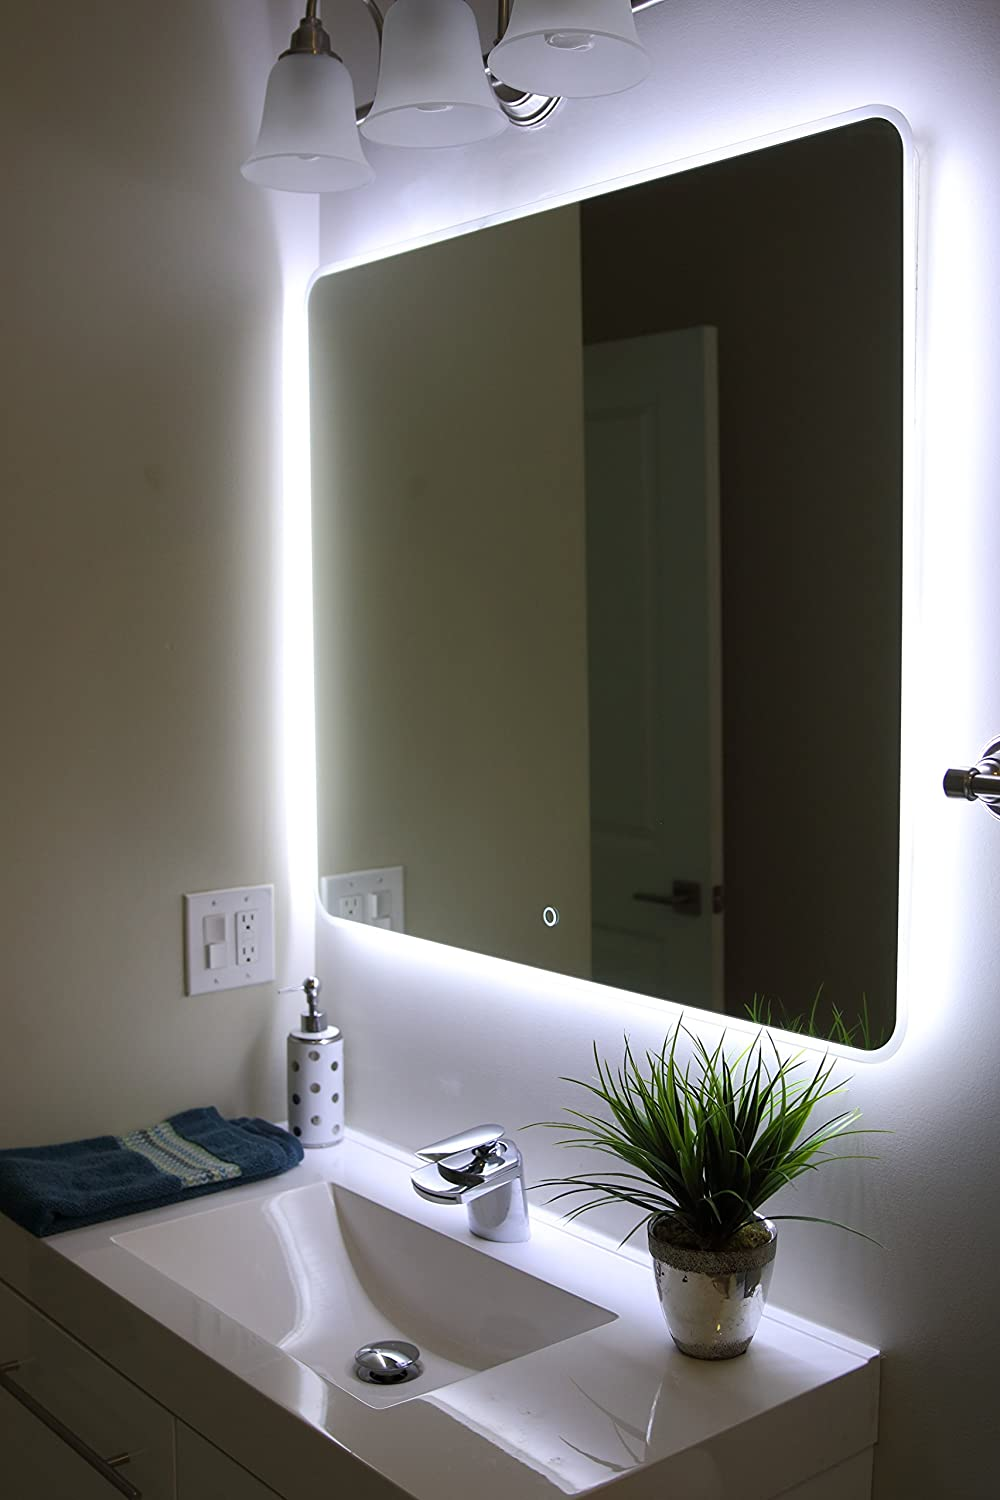 bathroom vanity with sink and mirror. Amazon com  Windbay Backlit Led Light Bathroom Vanity Sink Mirror Illuminated 36 Home Kitchen